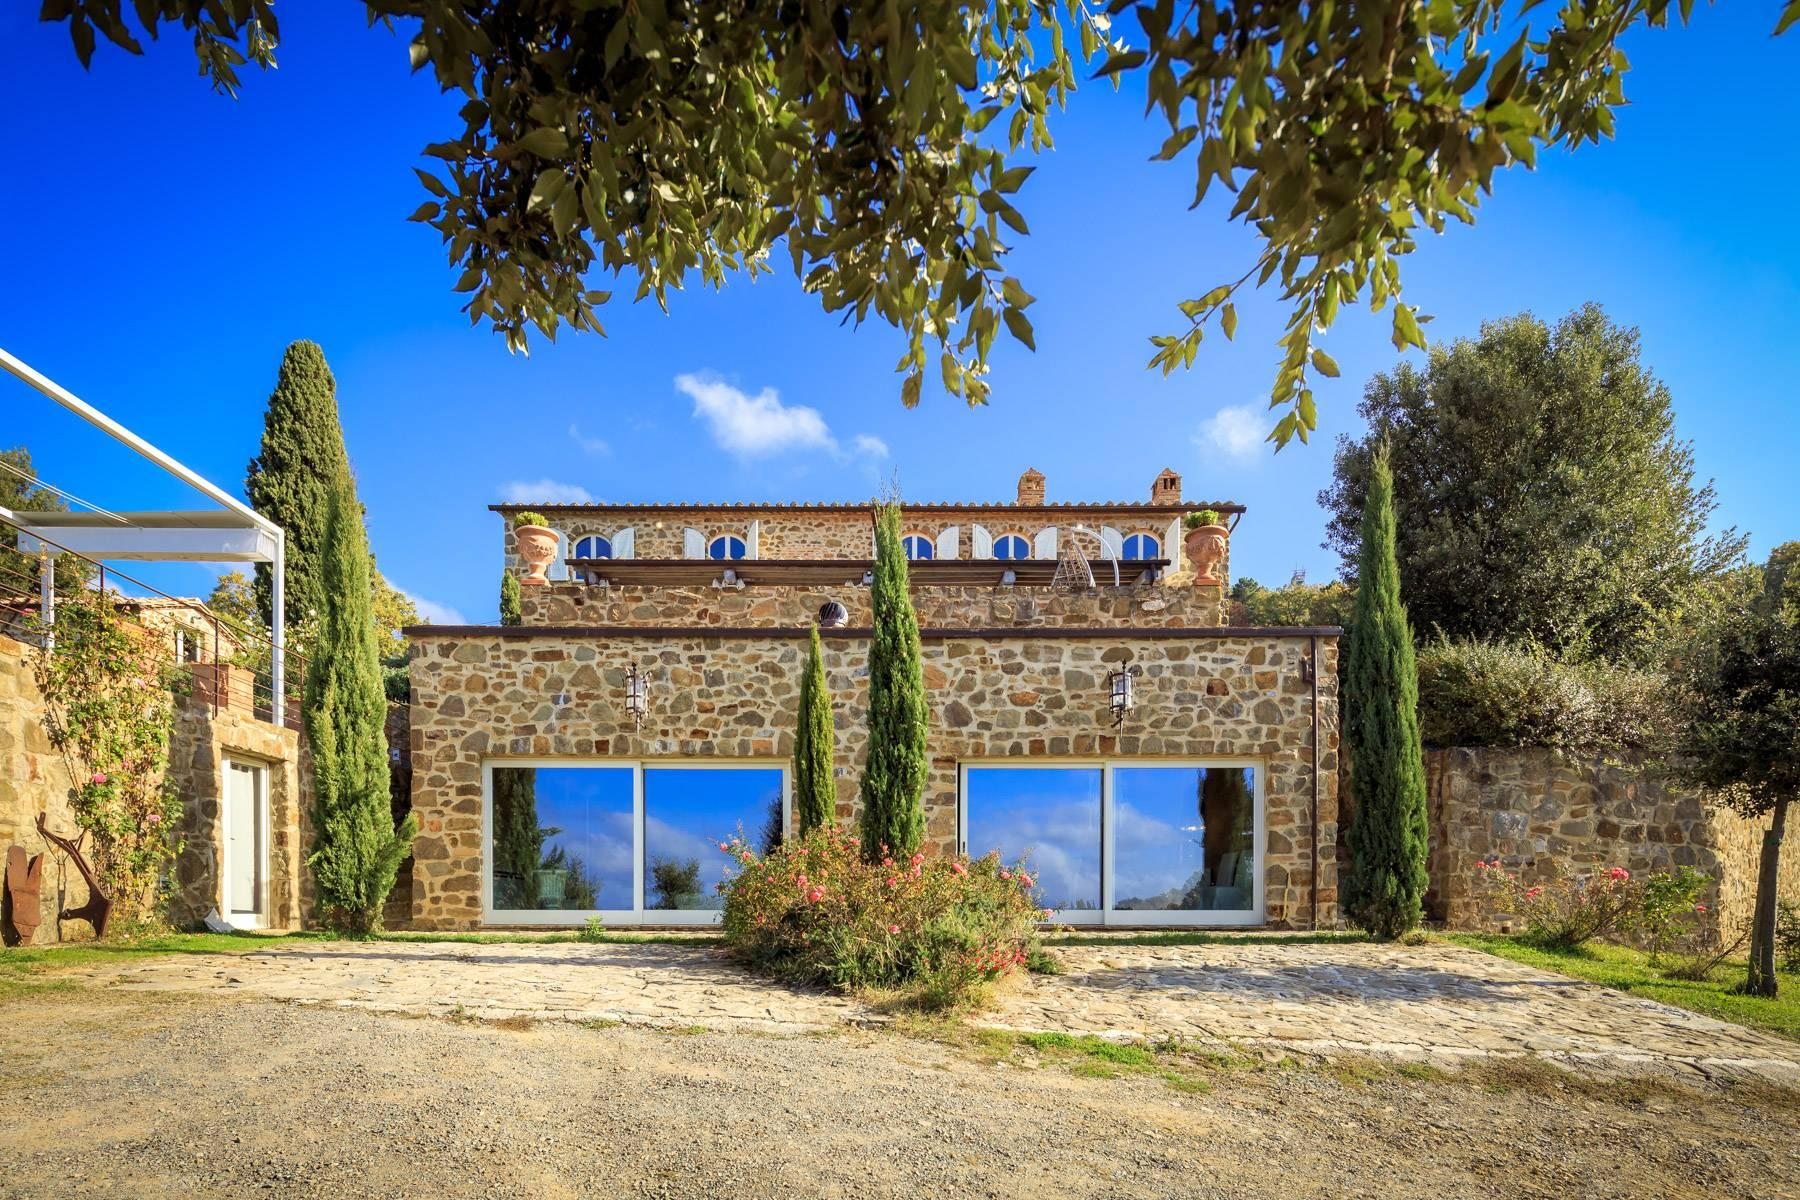 Marvelous newly restored farmhouse close to Montalcino - 2